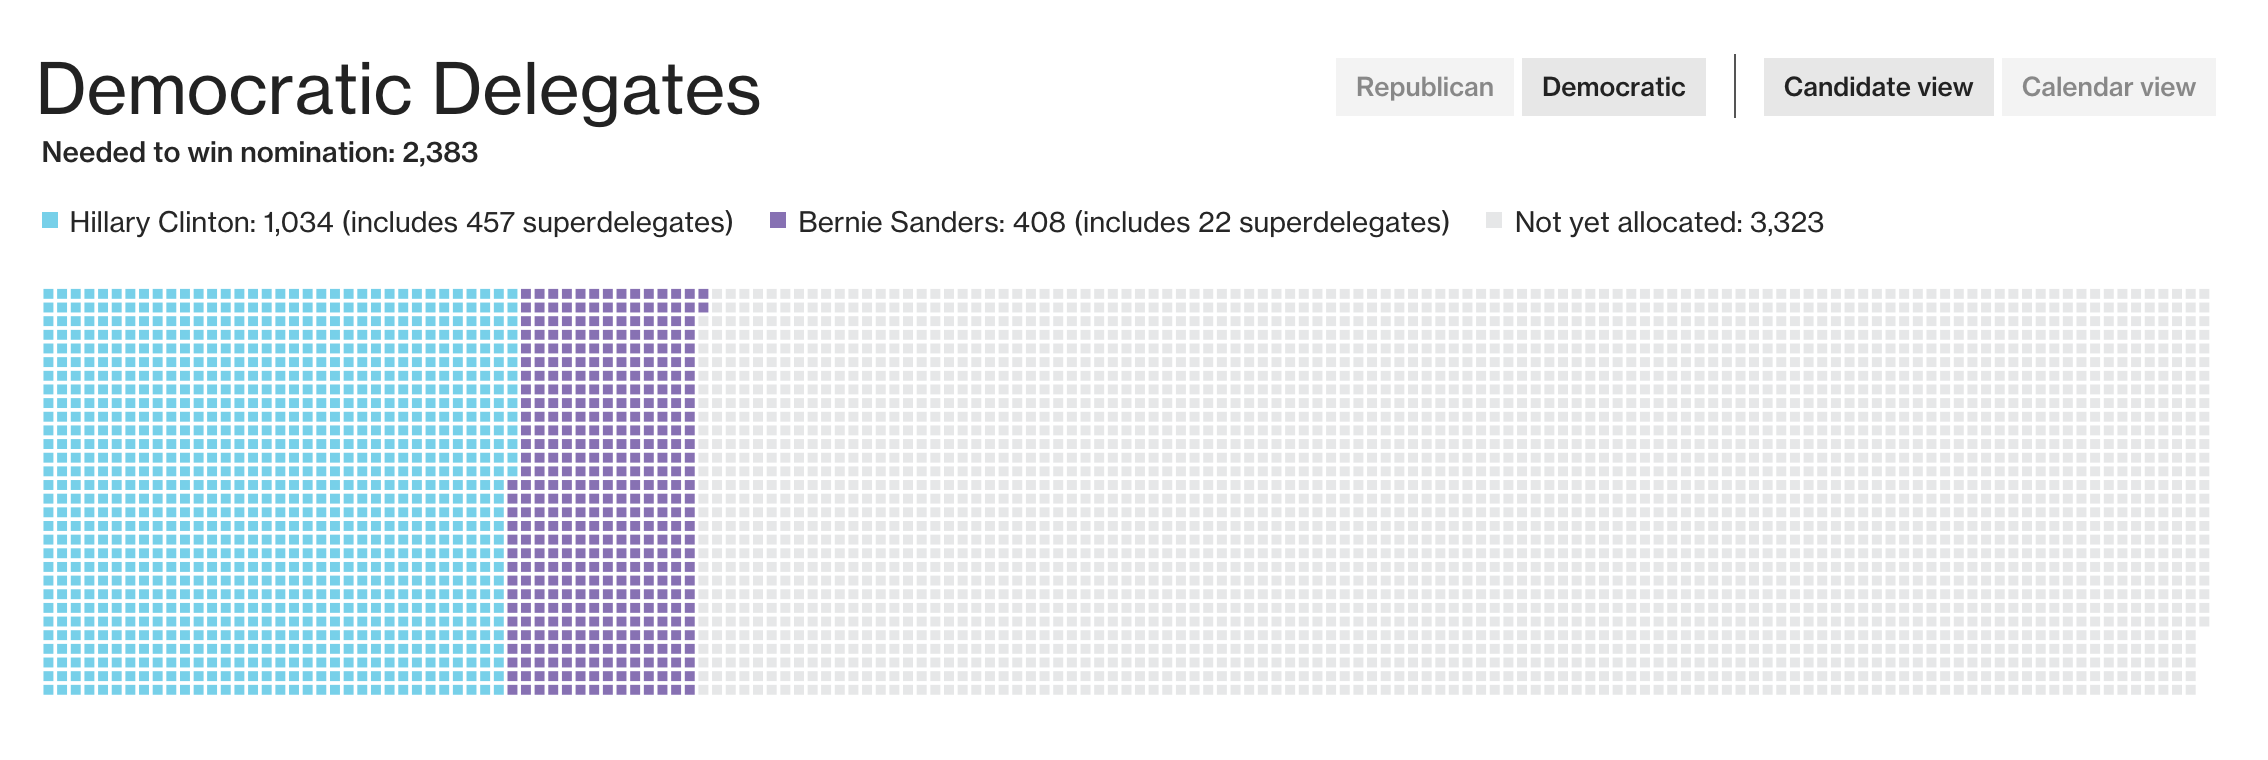 Superdelegates supporting each of the Democratic candidates, as of March 2, 2016 ( Bloomberg Politics )